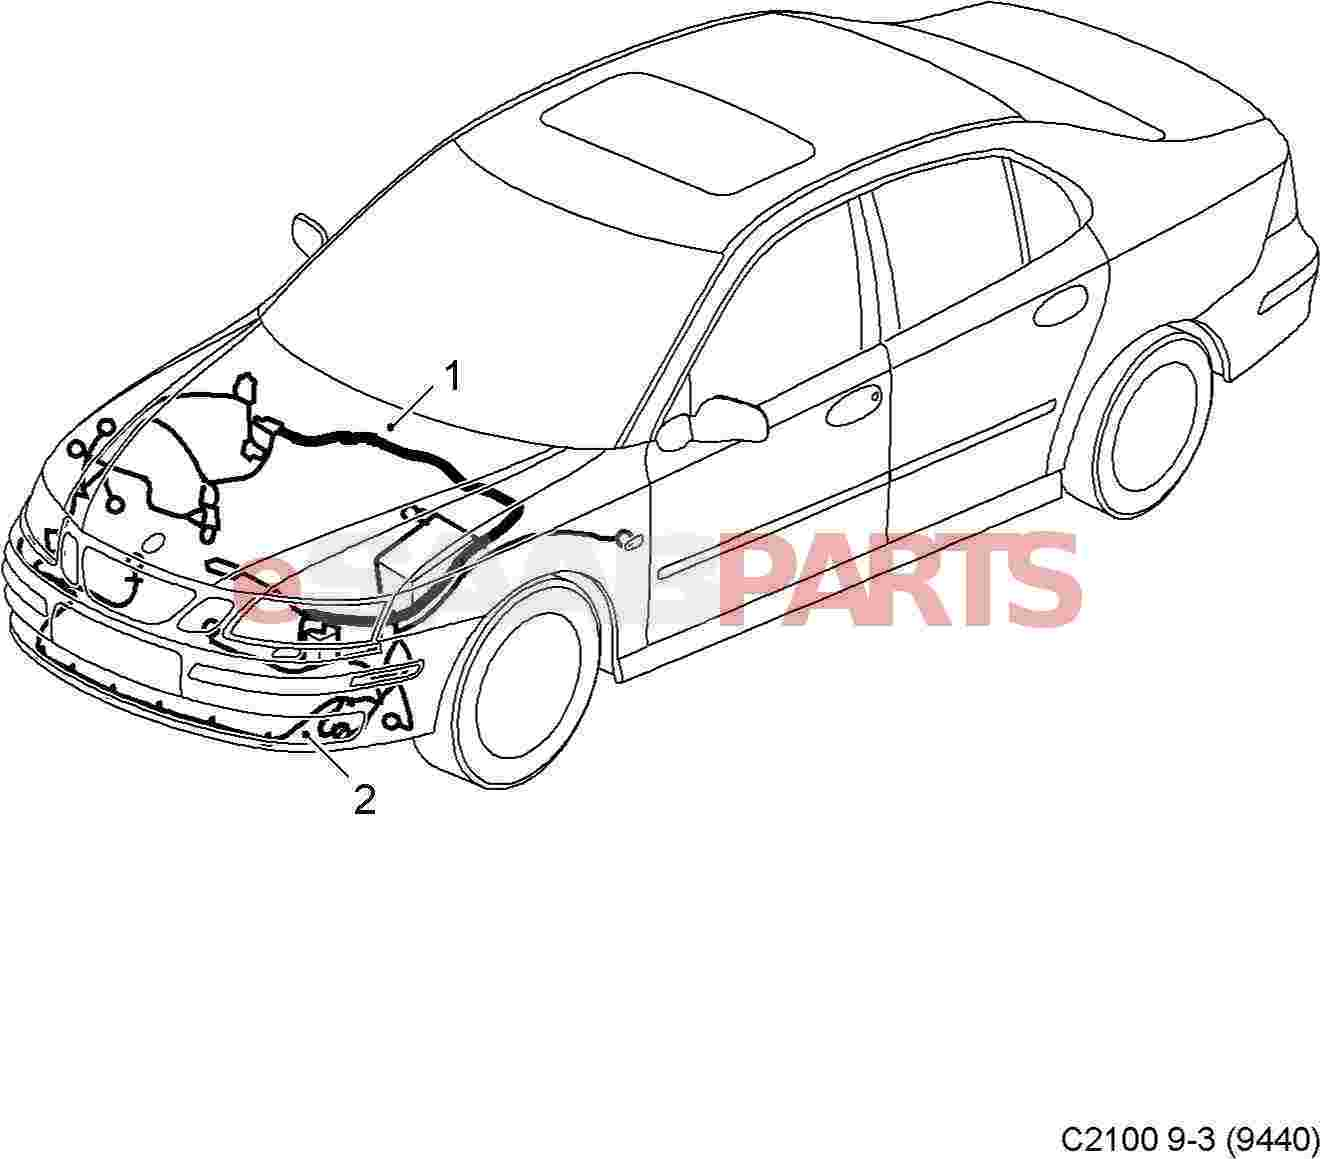 14384 12767810] saab fog light harness genuine saab parts from saab 9-3 fog light wiring harness at sewacar.co